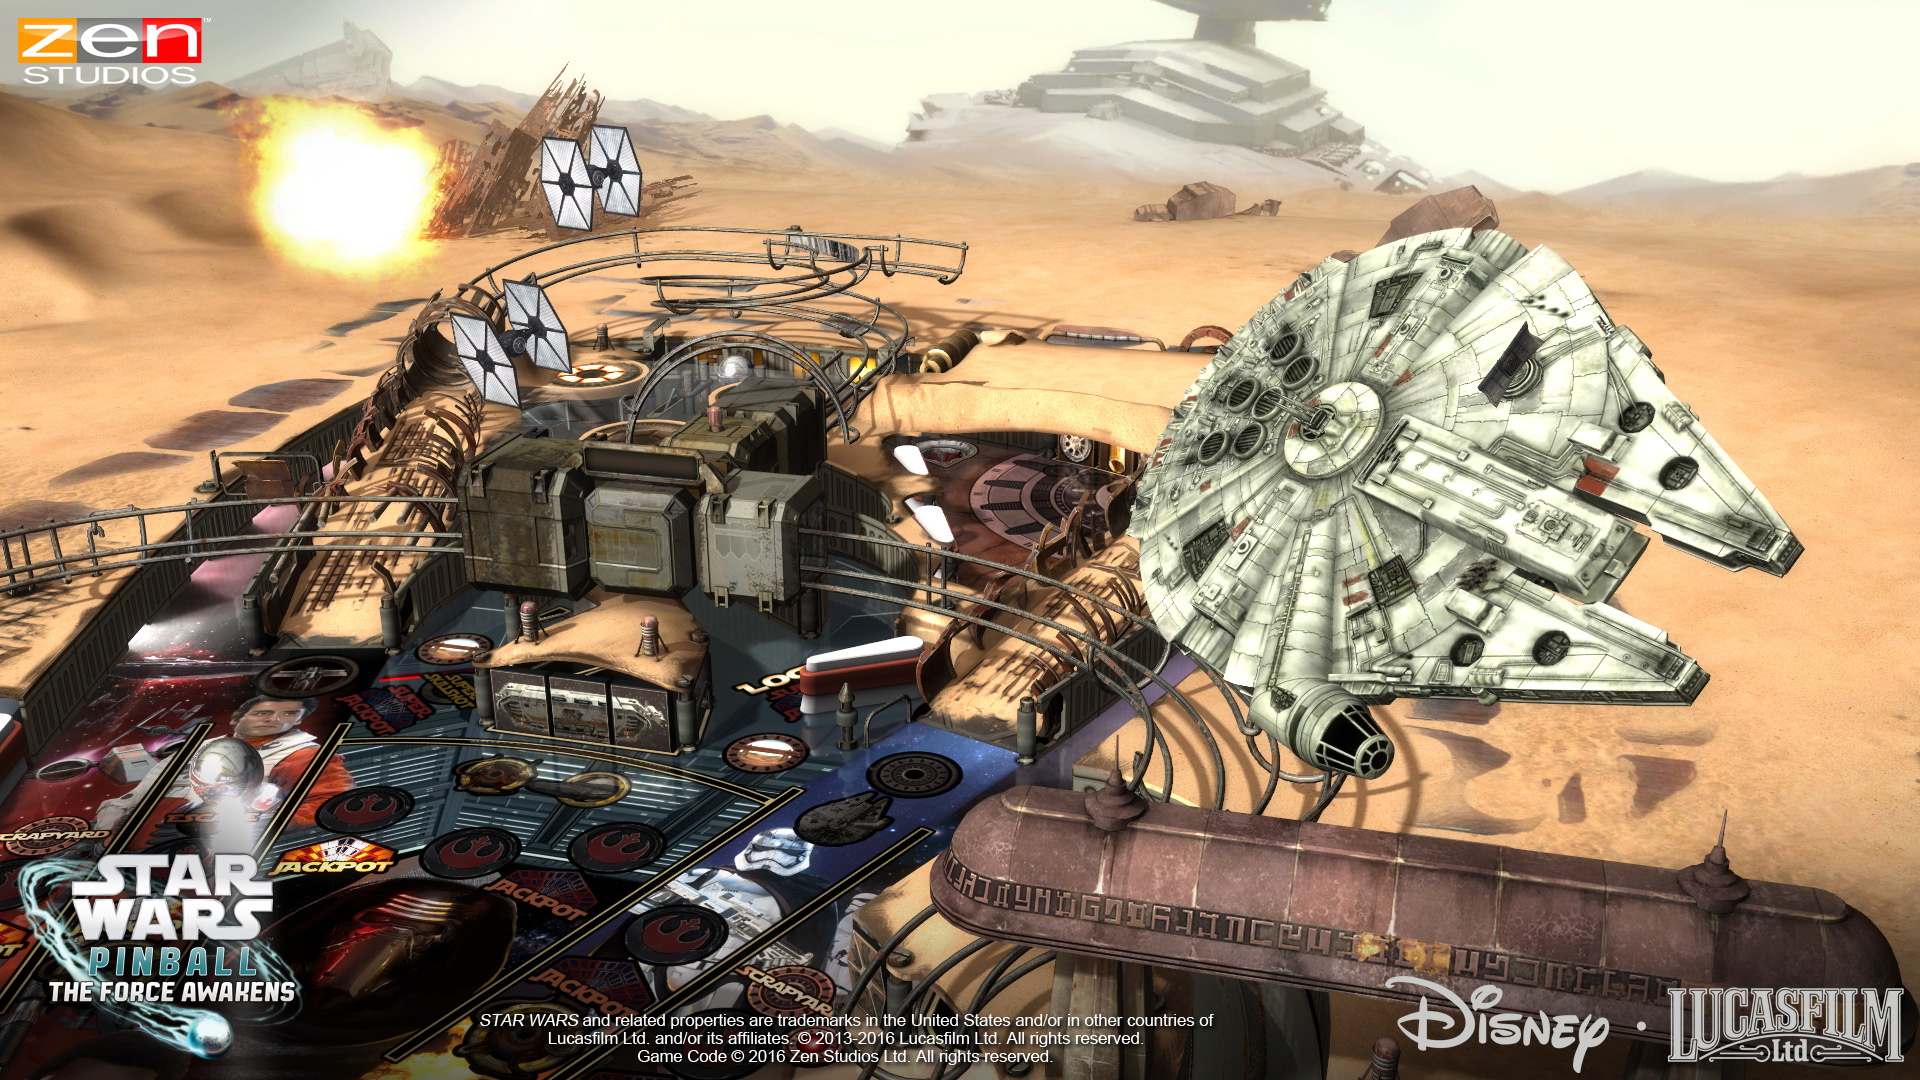 Stop the First Order or crush the Resistance on SHIELD in Zen Pinball's new Star Wars: The Force Awakens tables